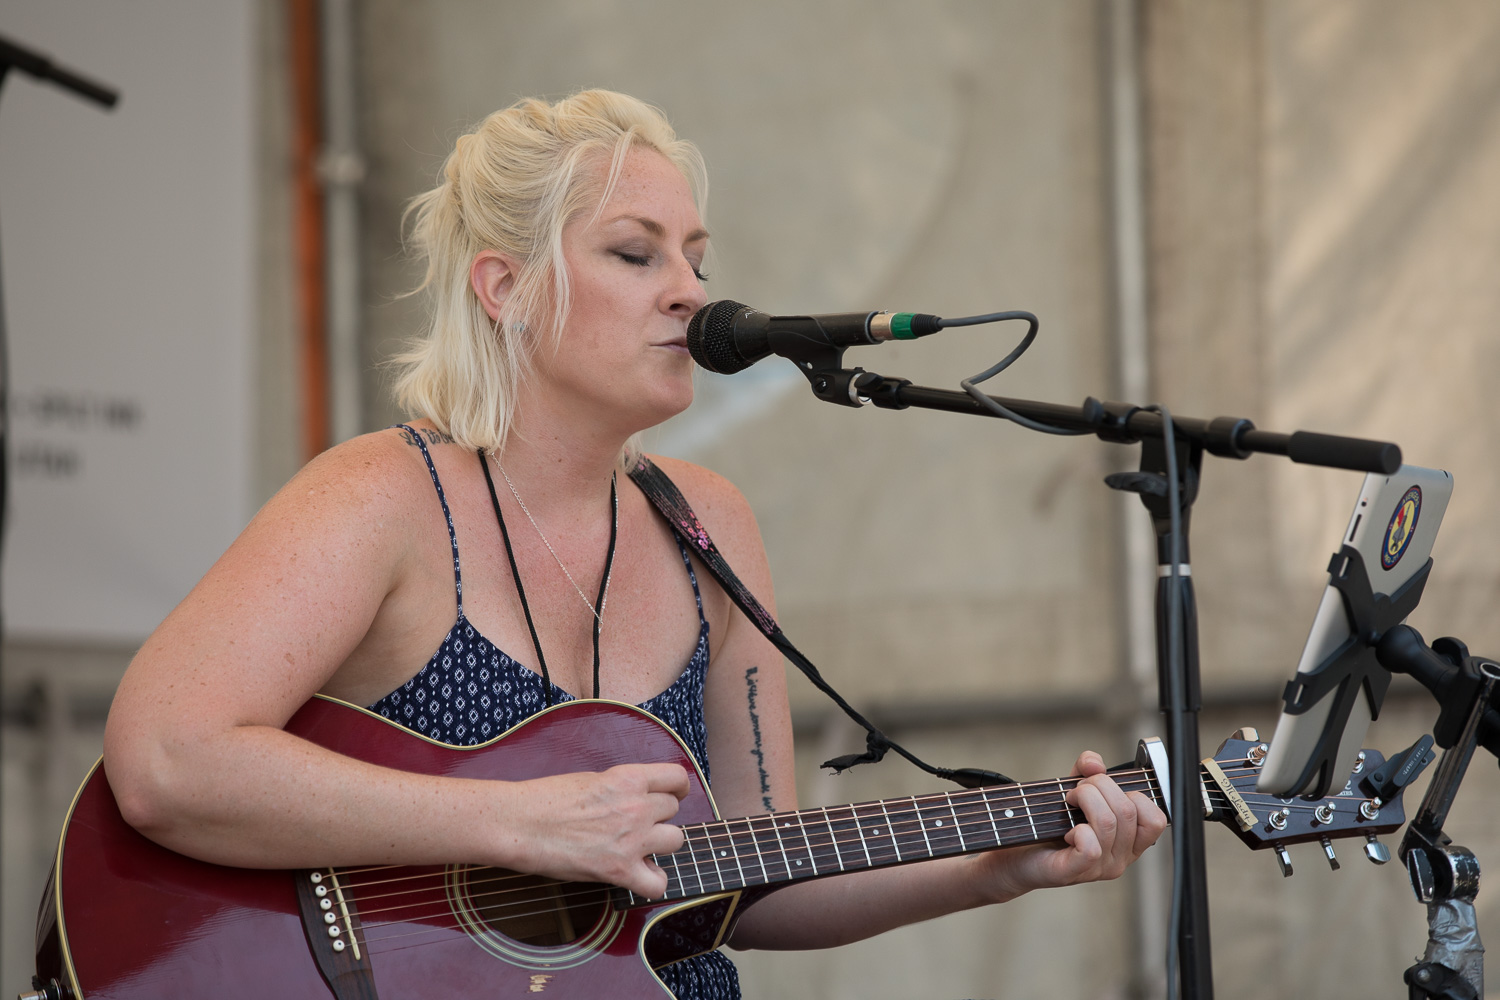 Musicians always deliver great performances at the 10th Annual Craft Lake City DIY Festival. Photo: Lmsorenson.net